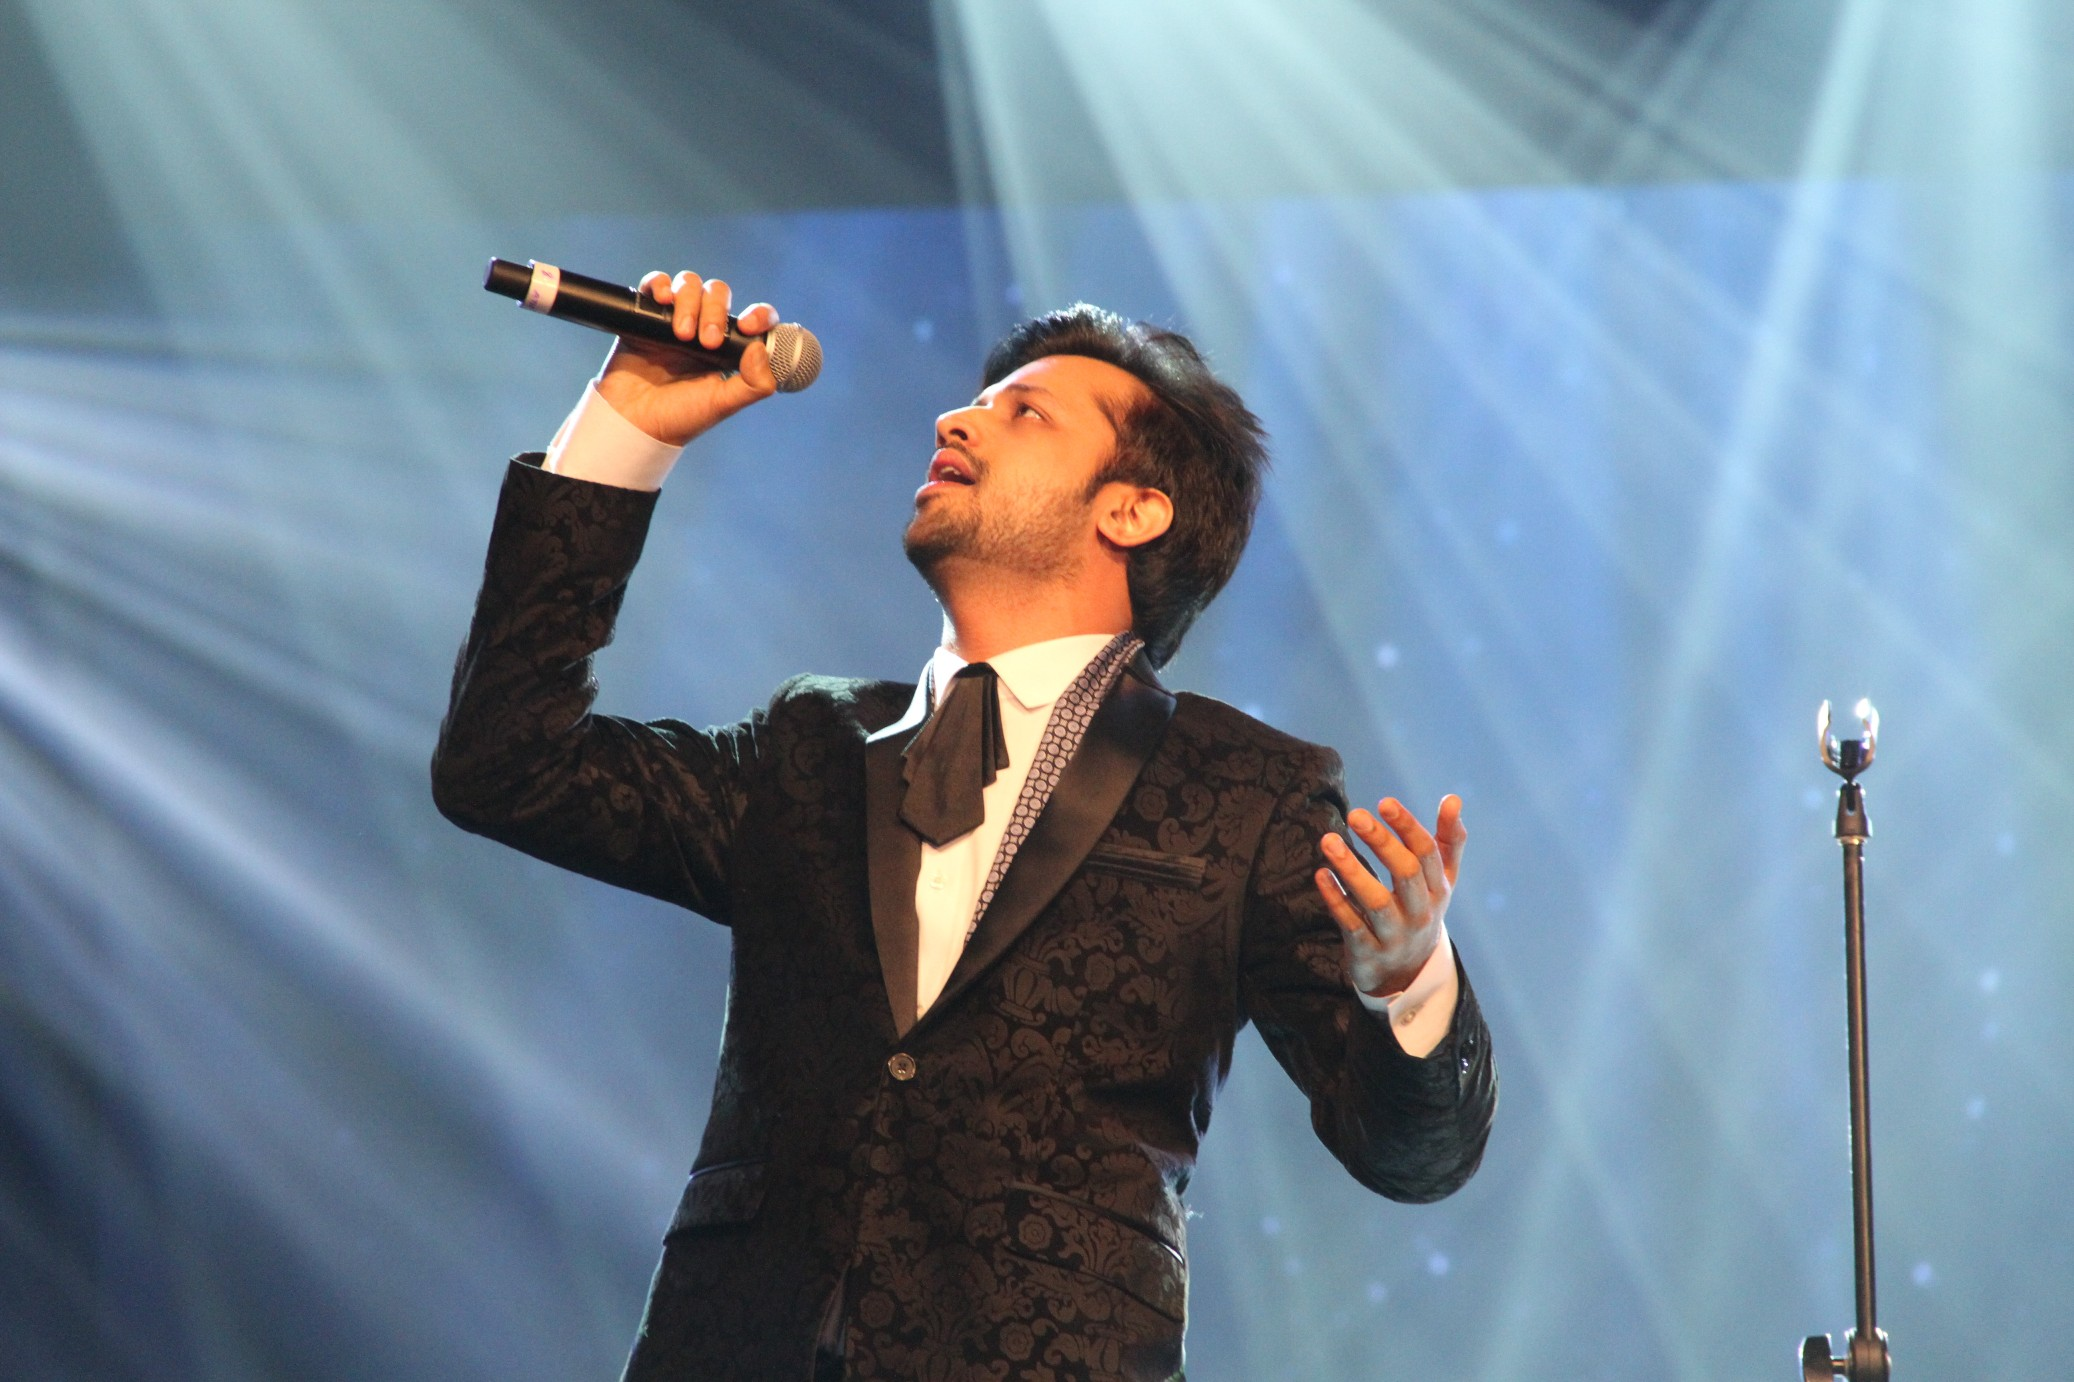 Himesh Reshammiya and Atif Aslam are the mentors for the finalists.